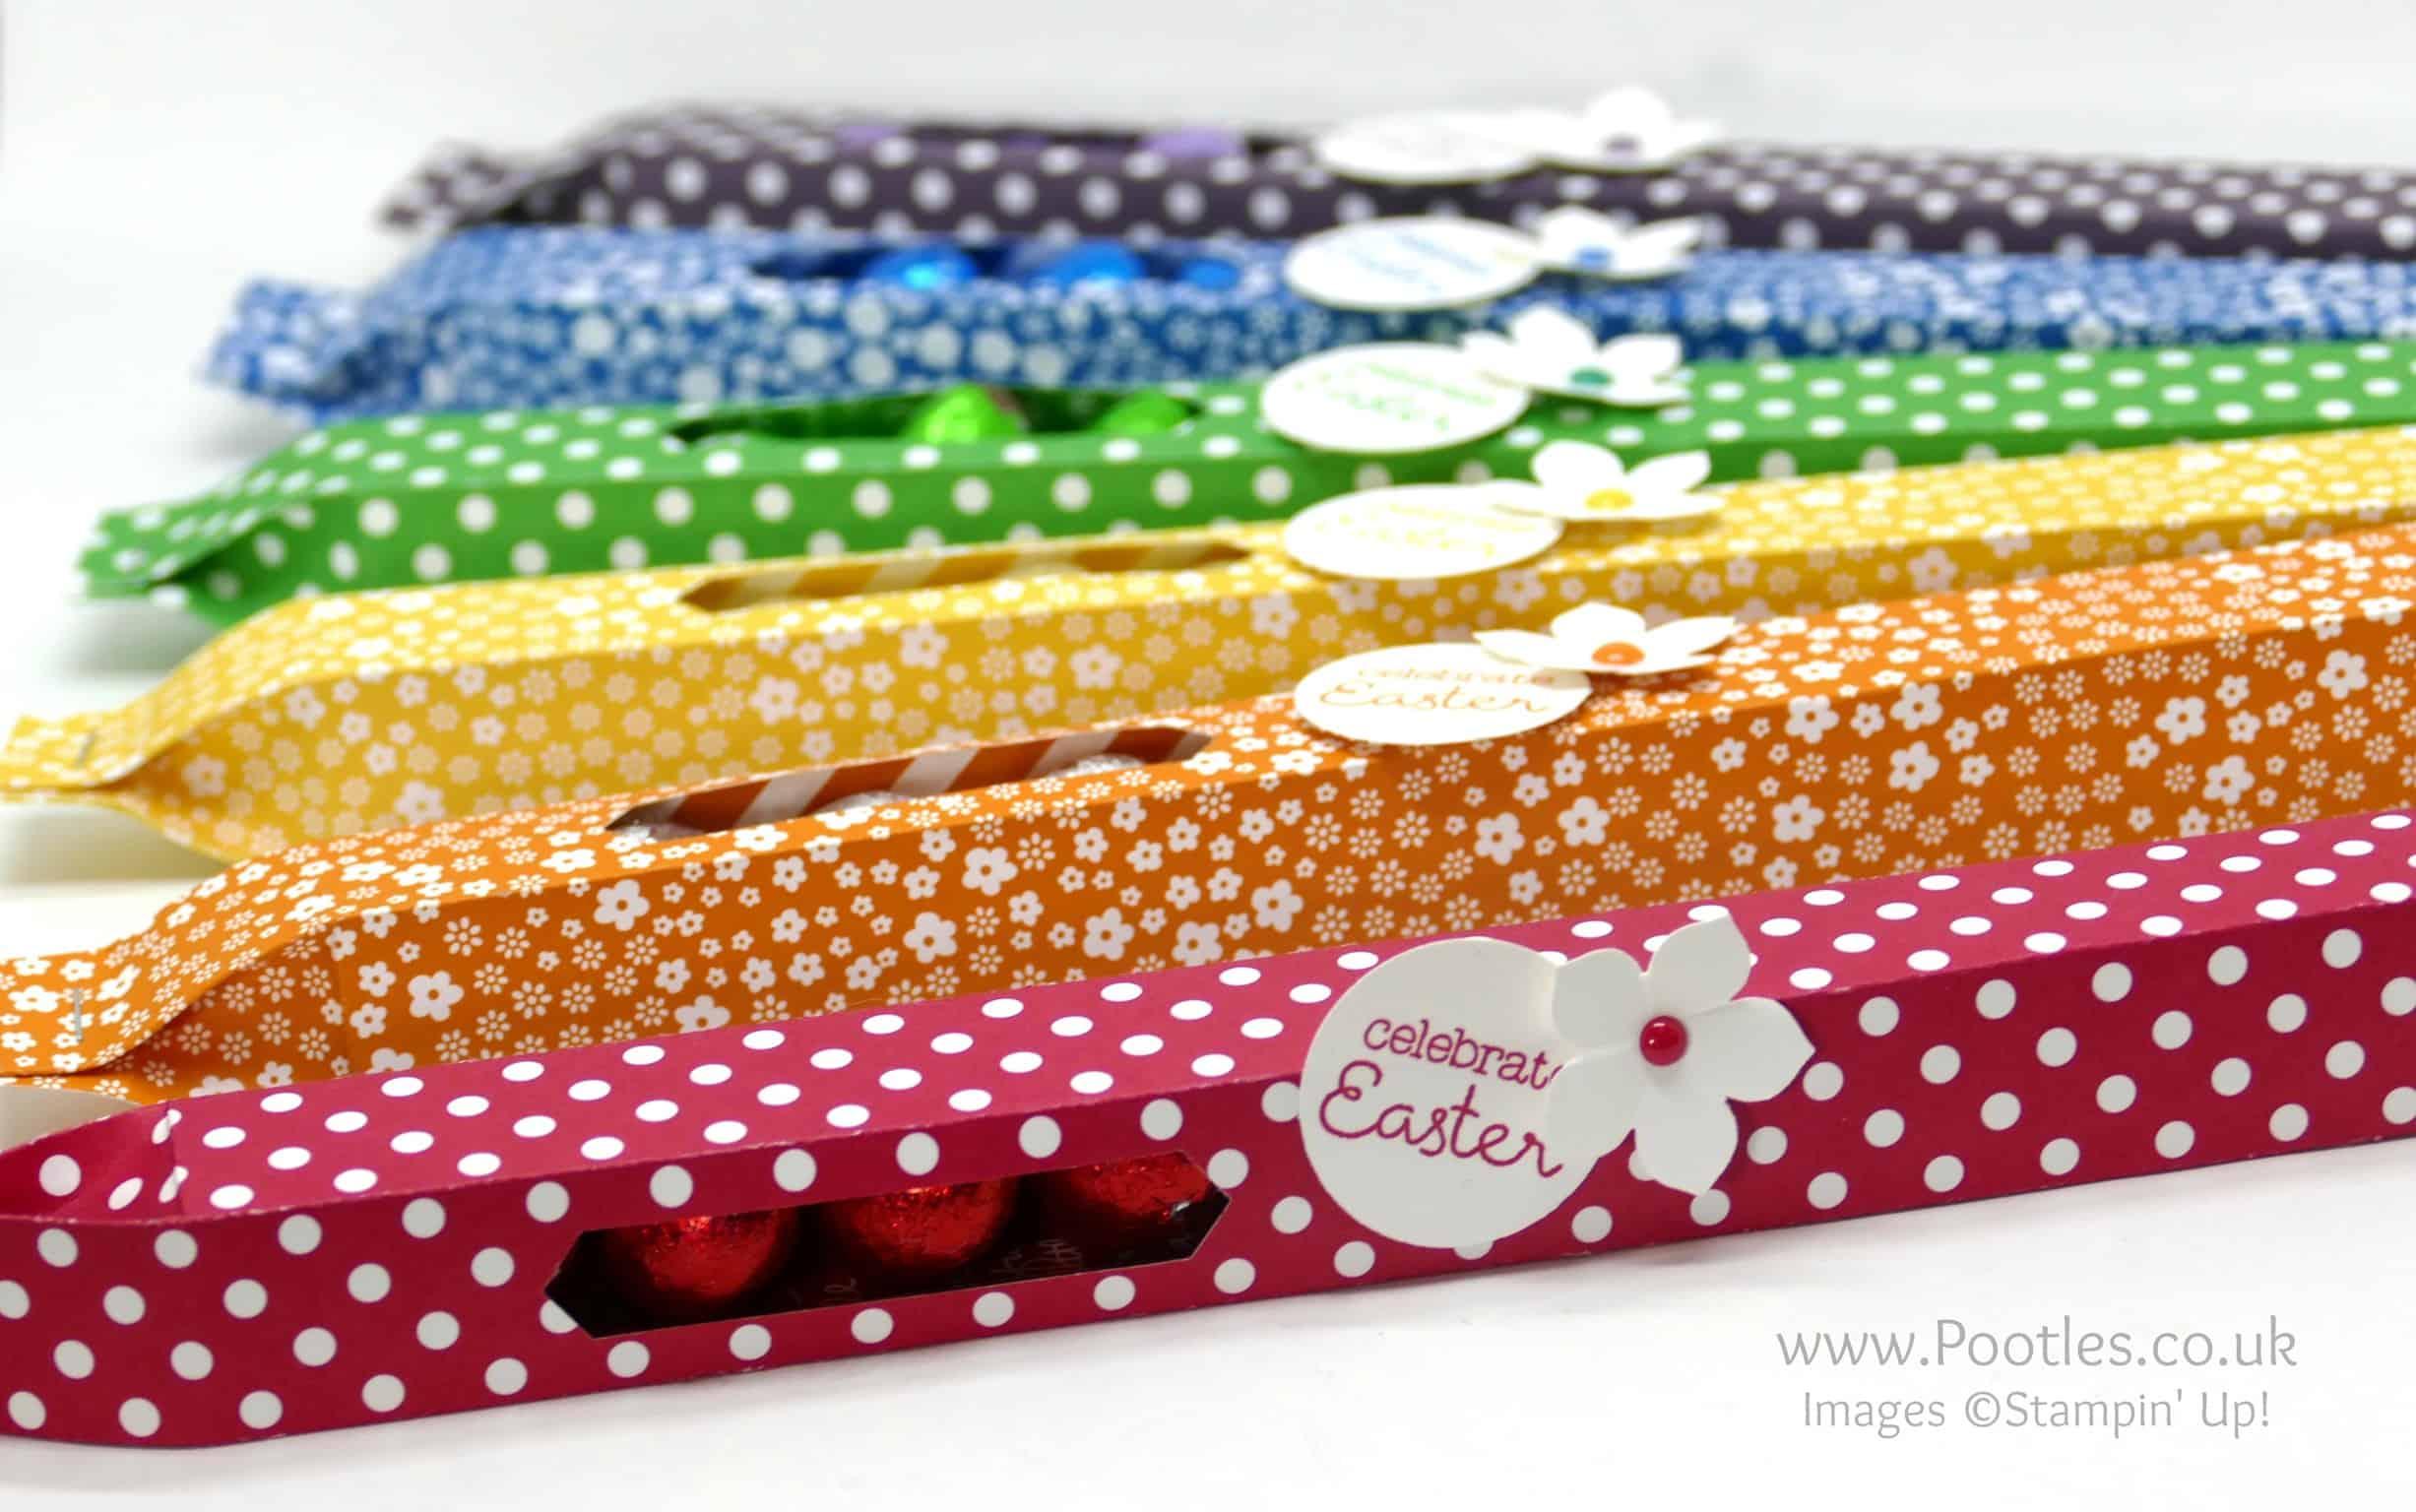 Long Slender Chocolate Egg Boxes using Stampin' Up! DSP